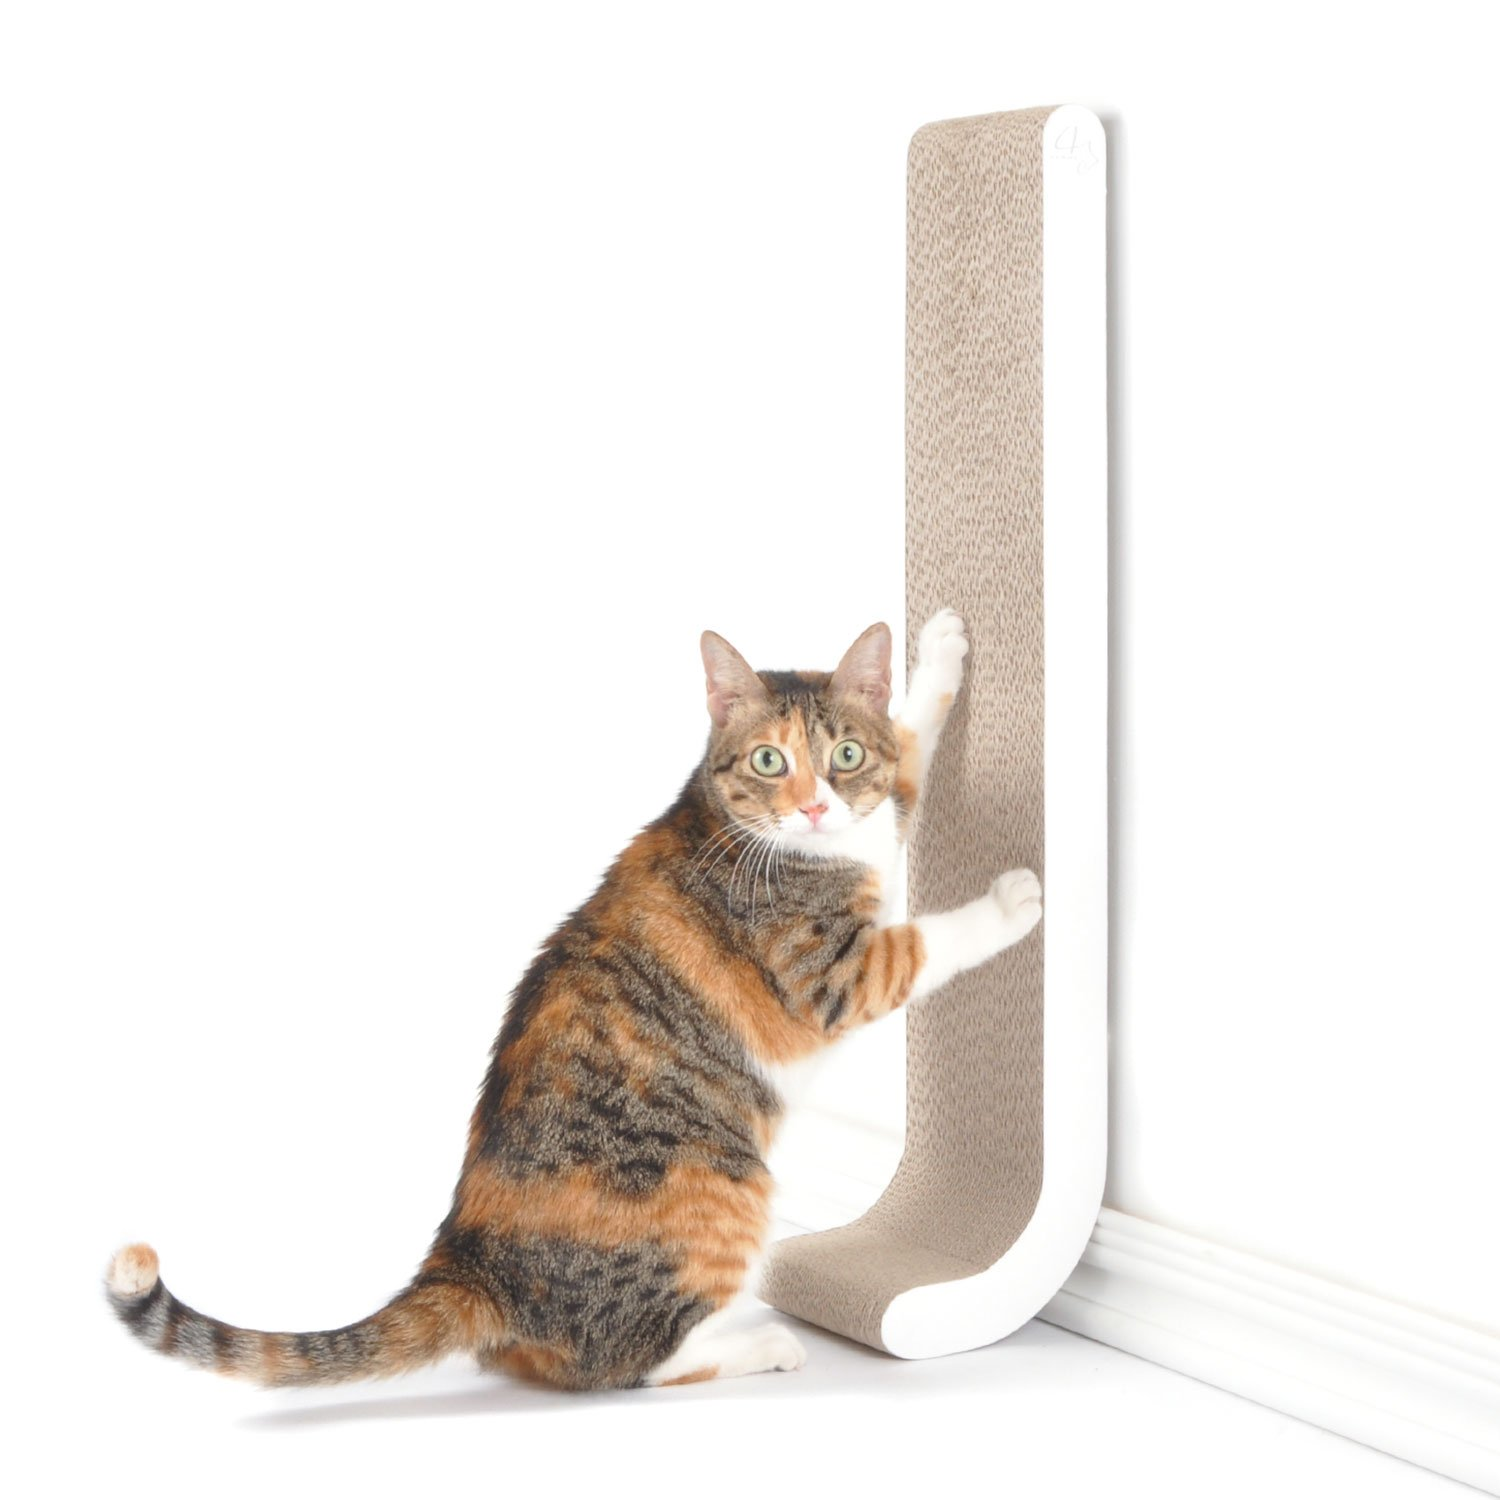 4CLAWS Wall Mounted Scratching Post 26'' (White) - BASICS Collection Cat Scratcher, 26 x 5.7 x 5.5 in by 4CLAWS